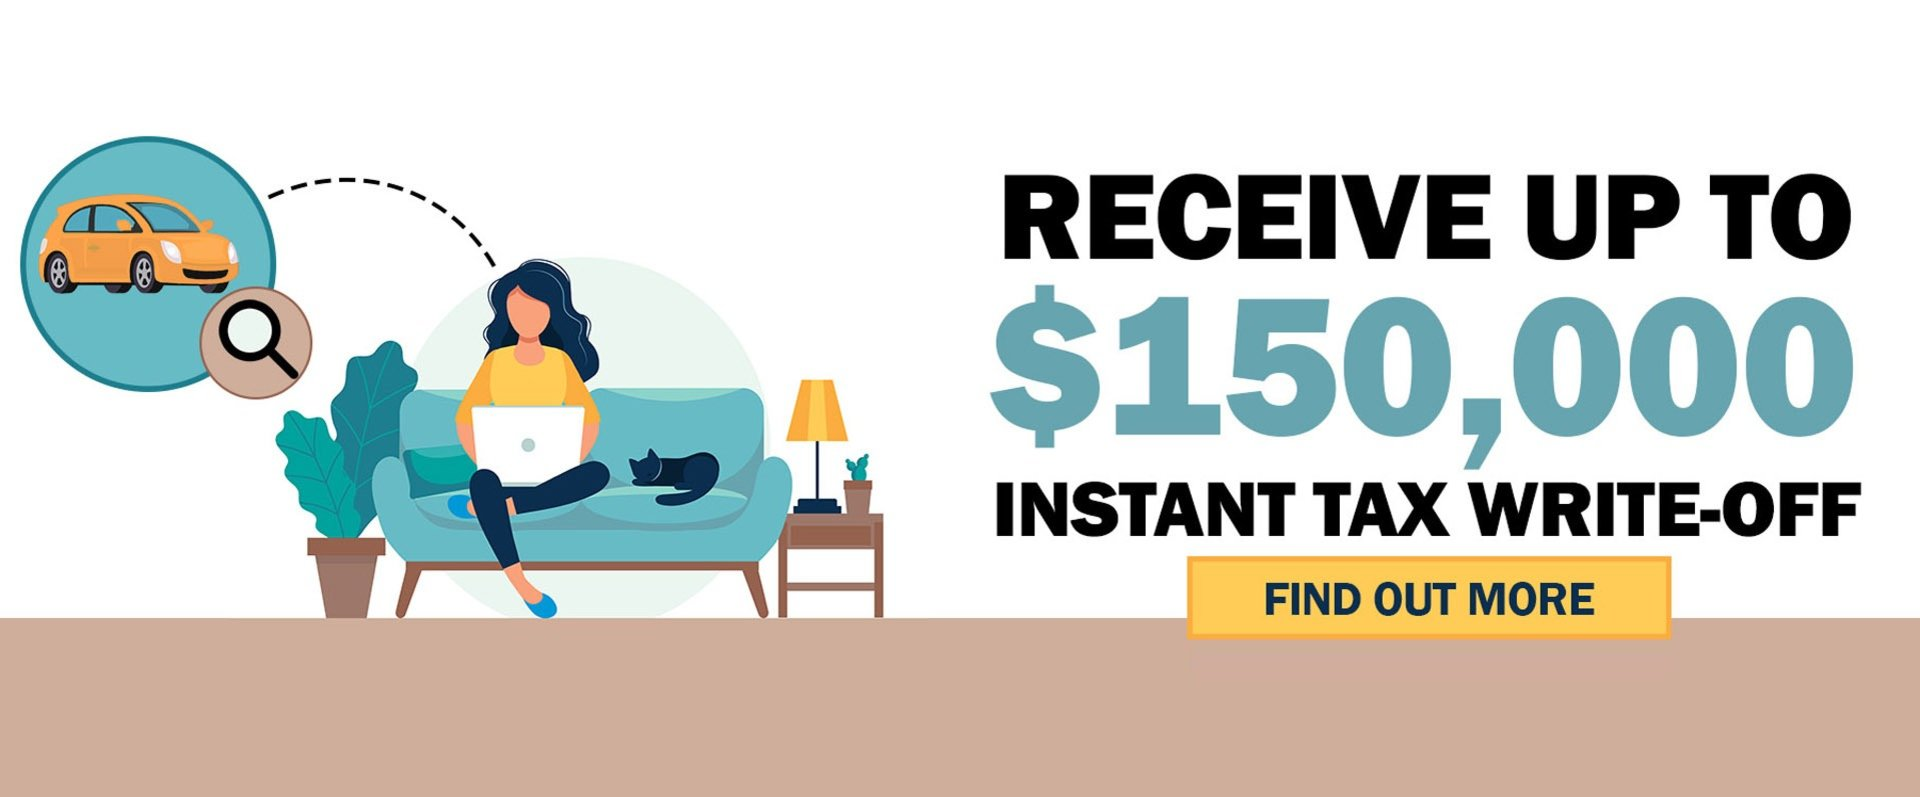 Southern VW - Receive up to $150,000 Instant Tax Write-off